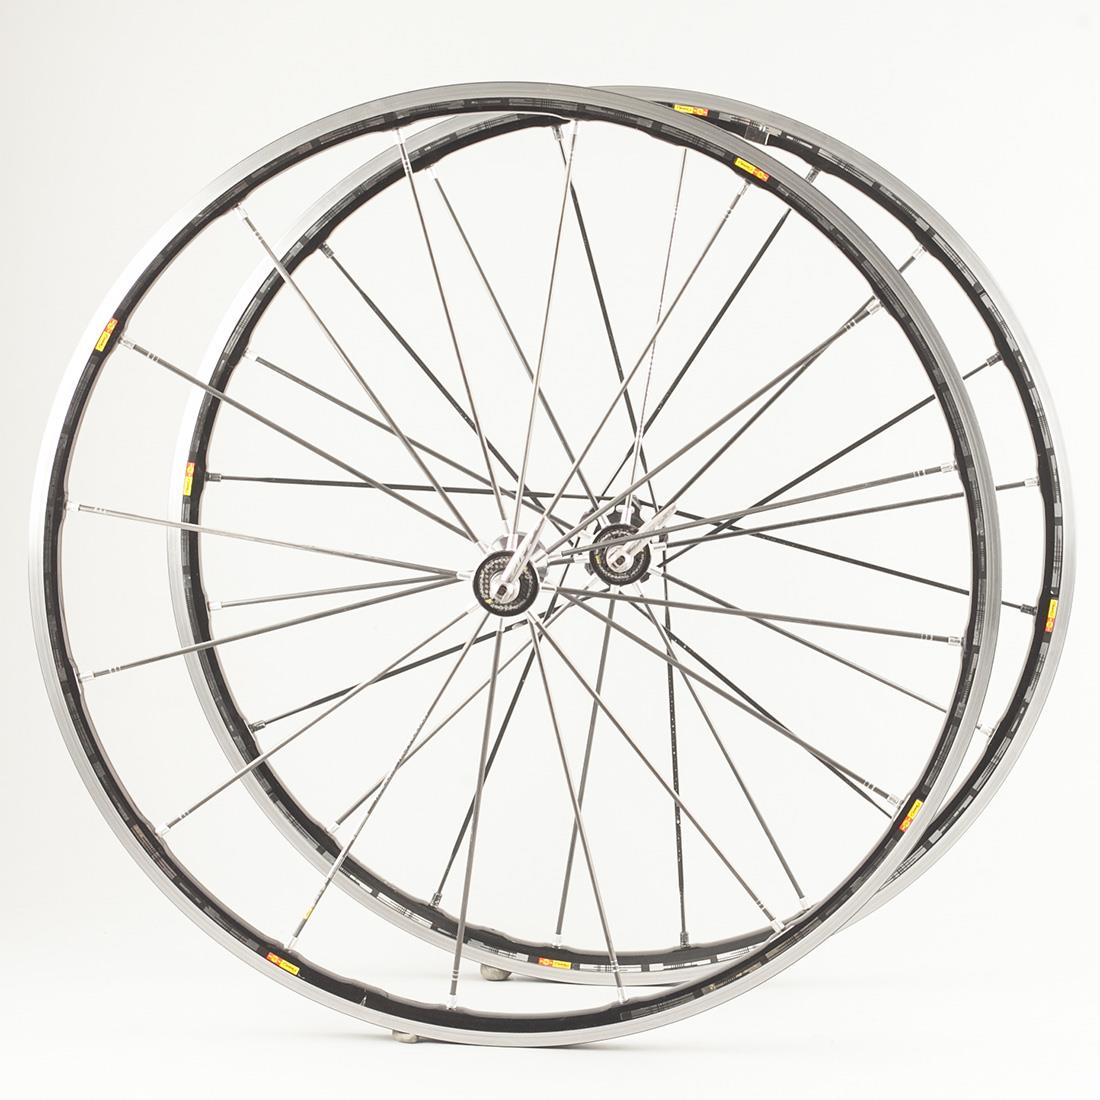 Mavic R Sys Ssc Carbon Spoke Clincher Road Bike 700c